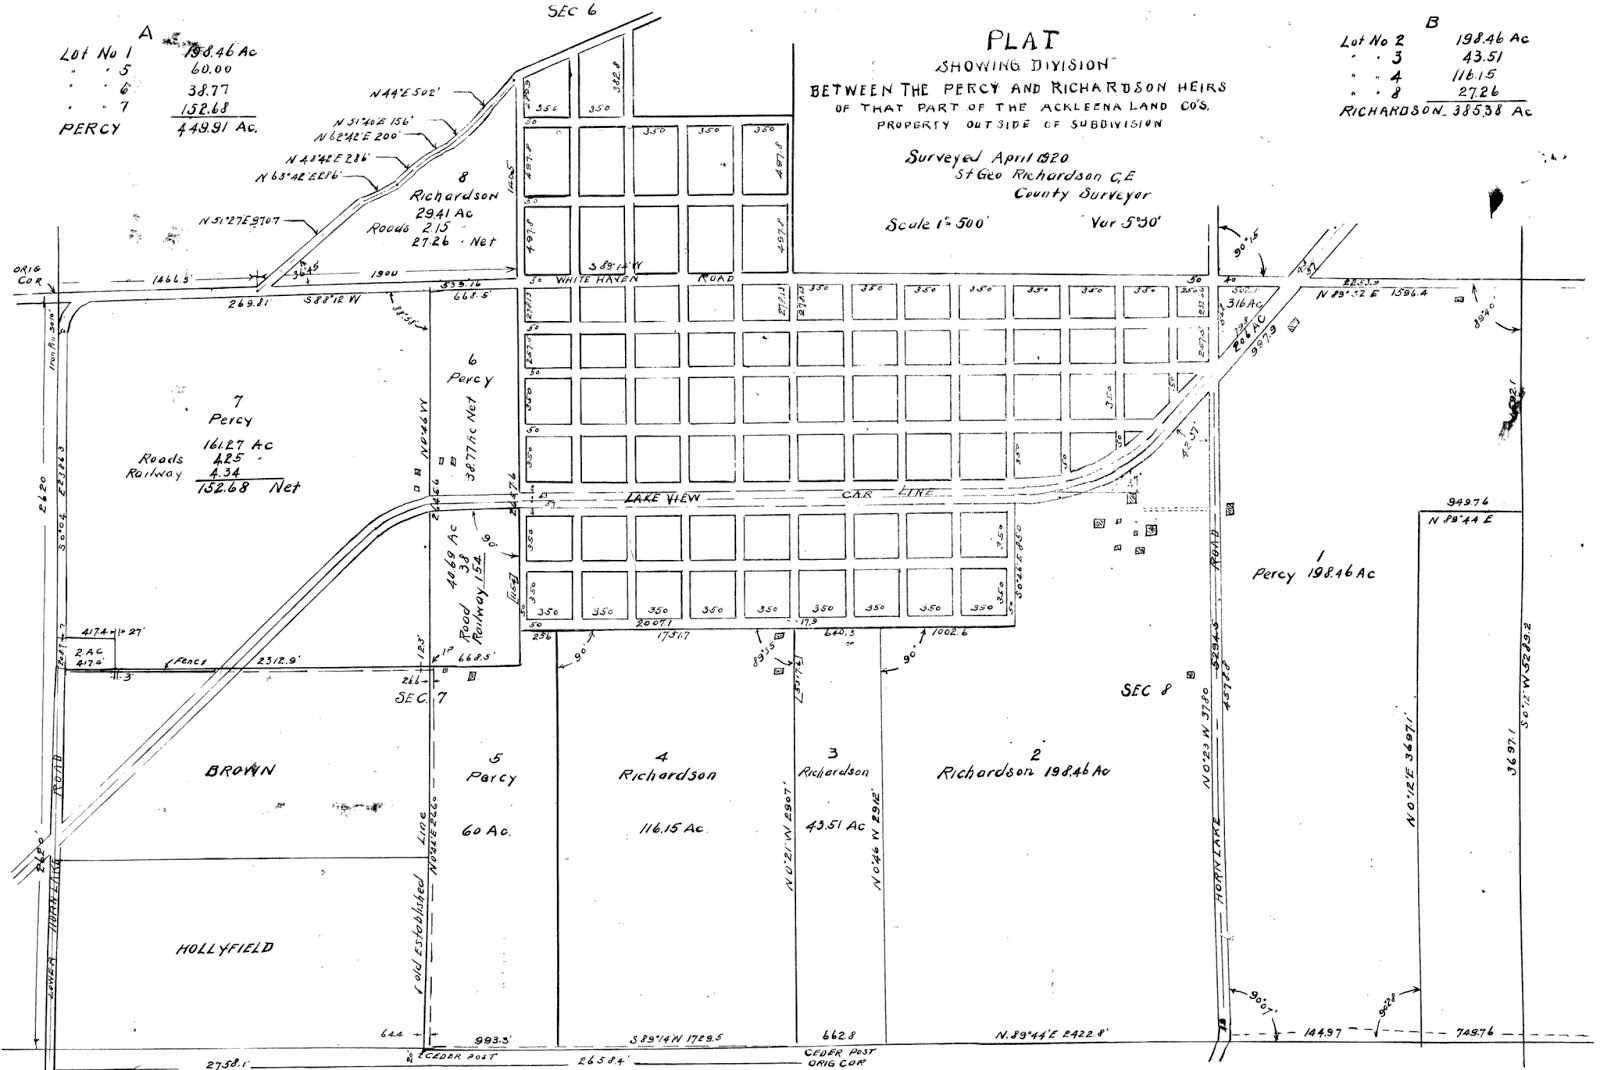 finally this plat was submitted to the register s office in 1921 creating large lots outside of the core lakeview development this map essentially